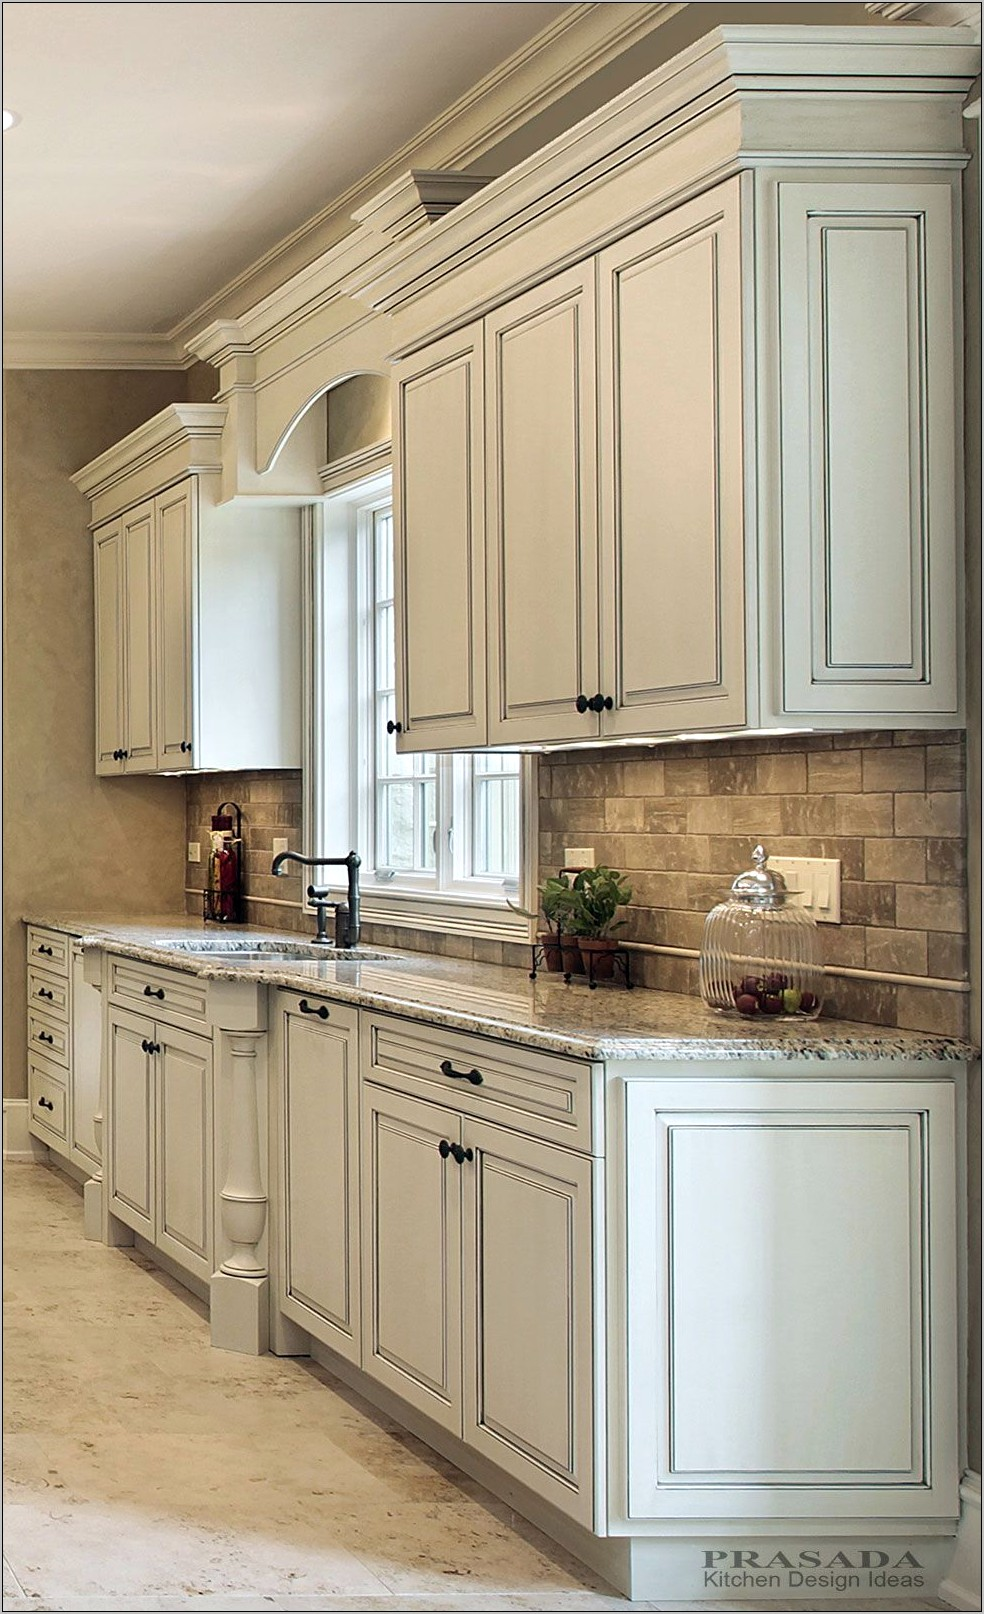 Pics Of Decorated Kitchen Cabinet Countertops